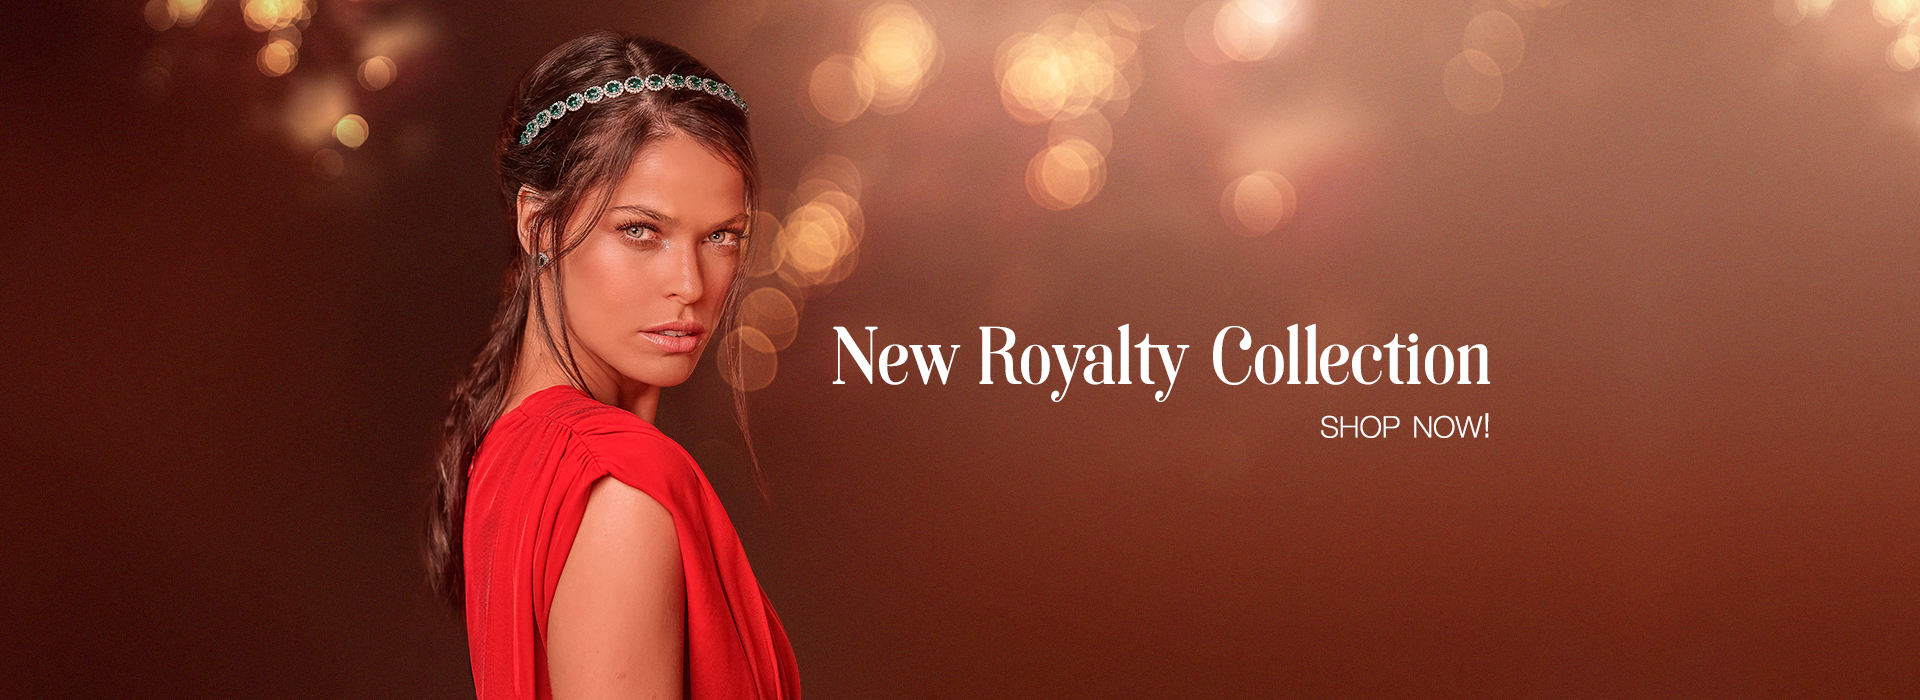 New Royalty Collection